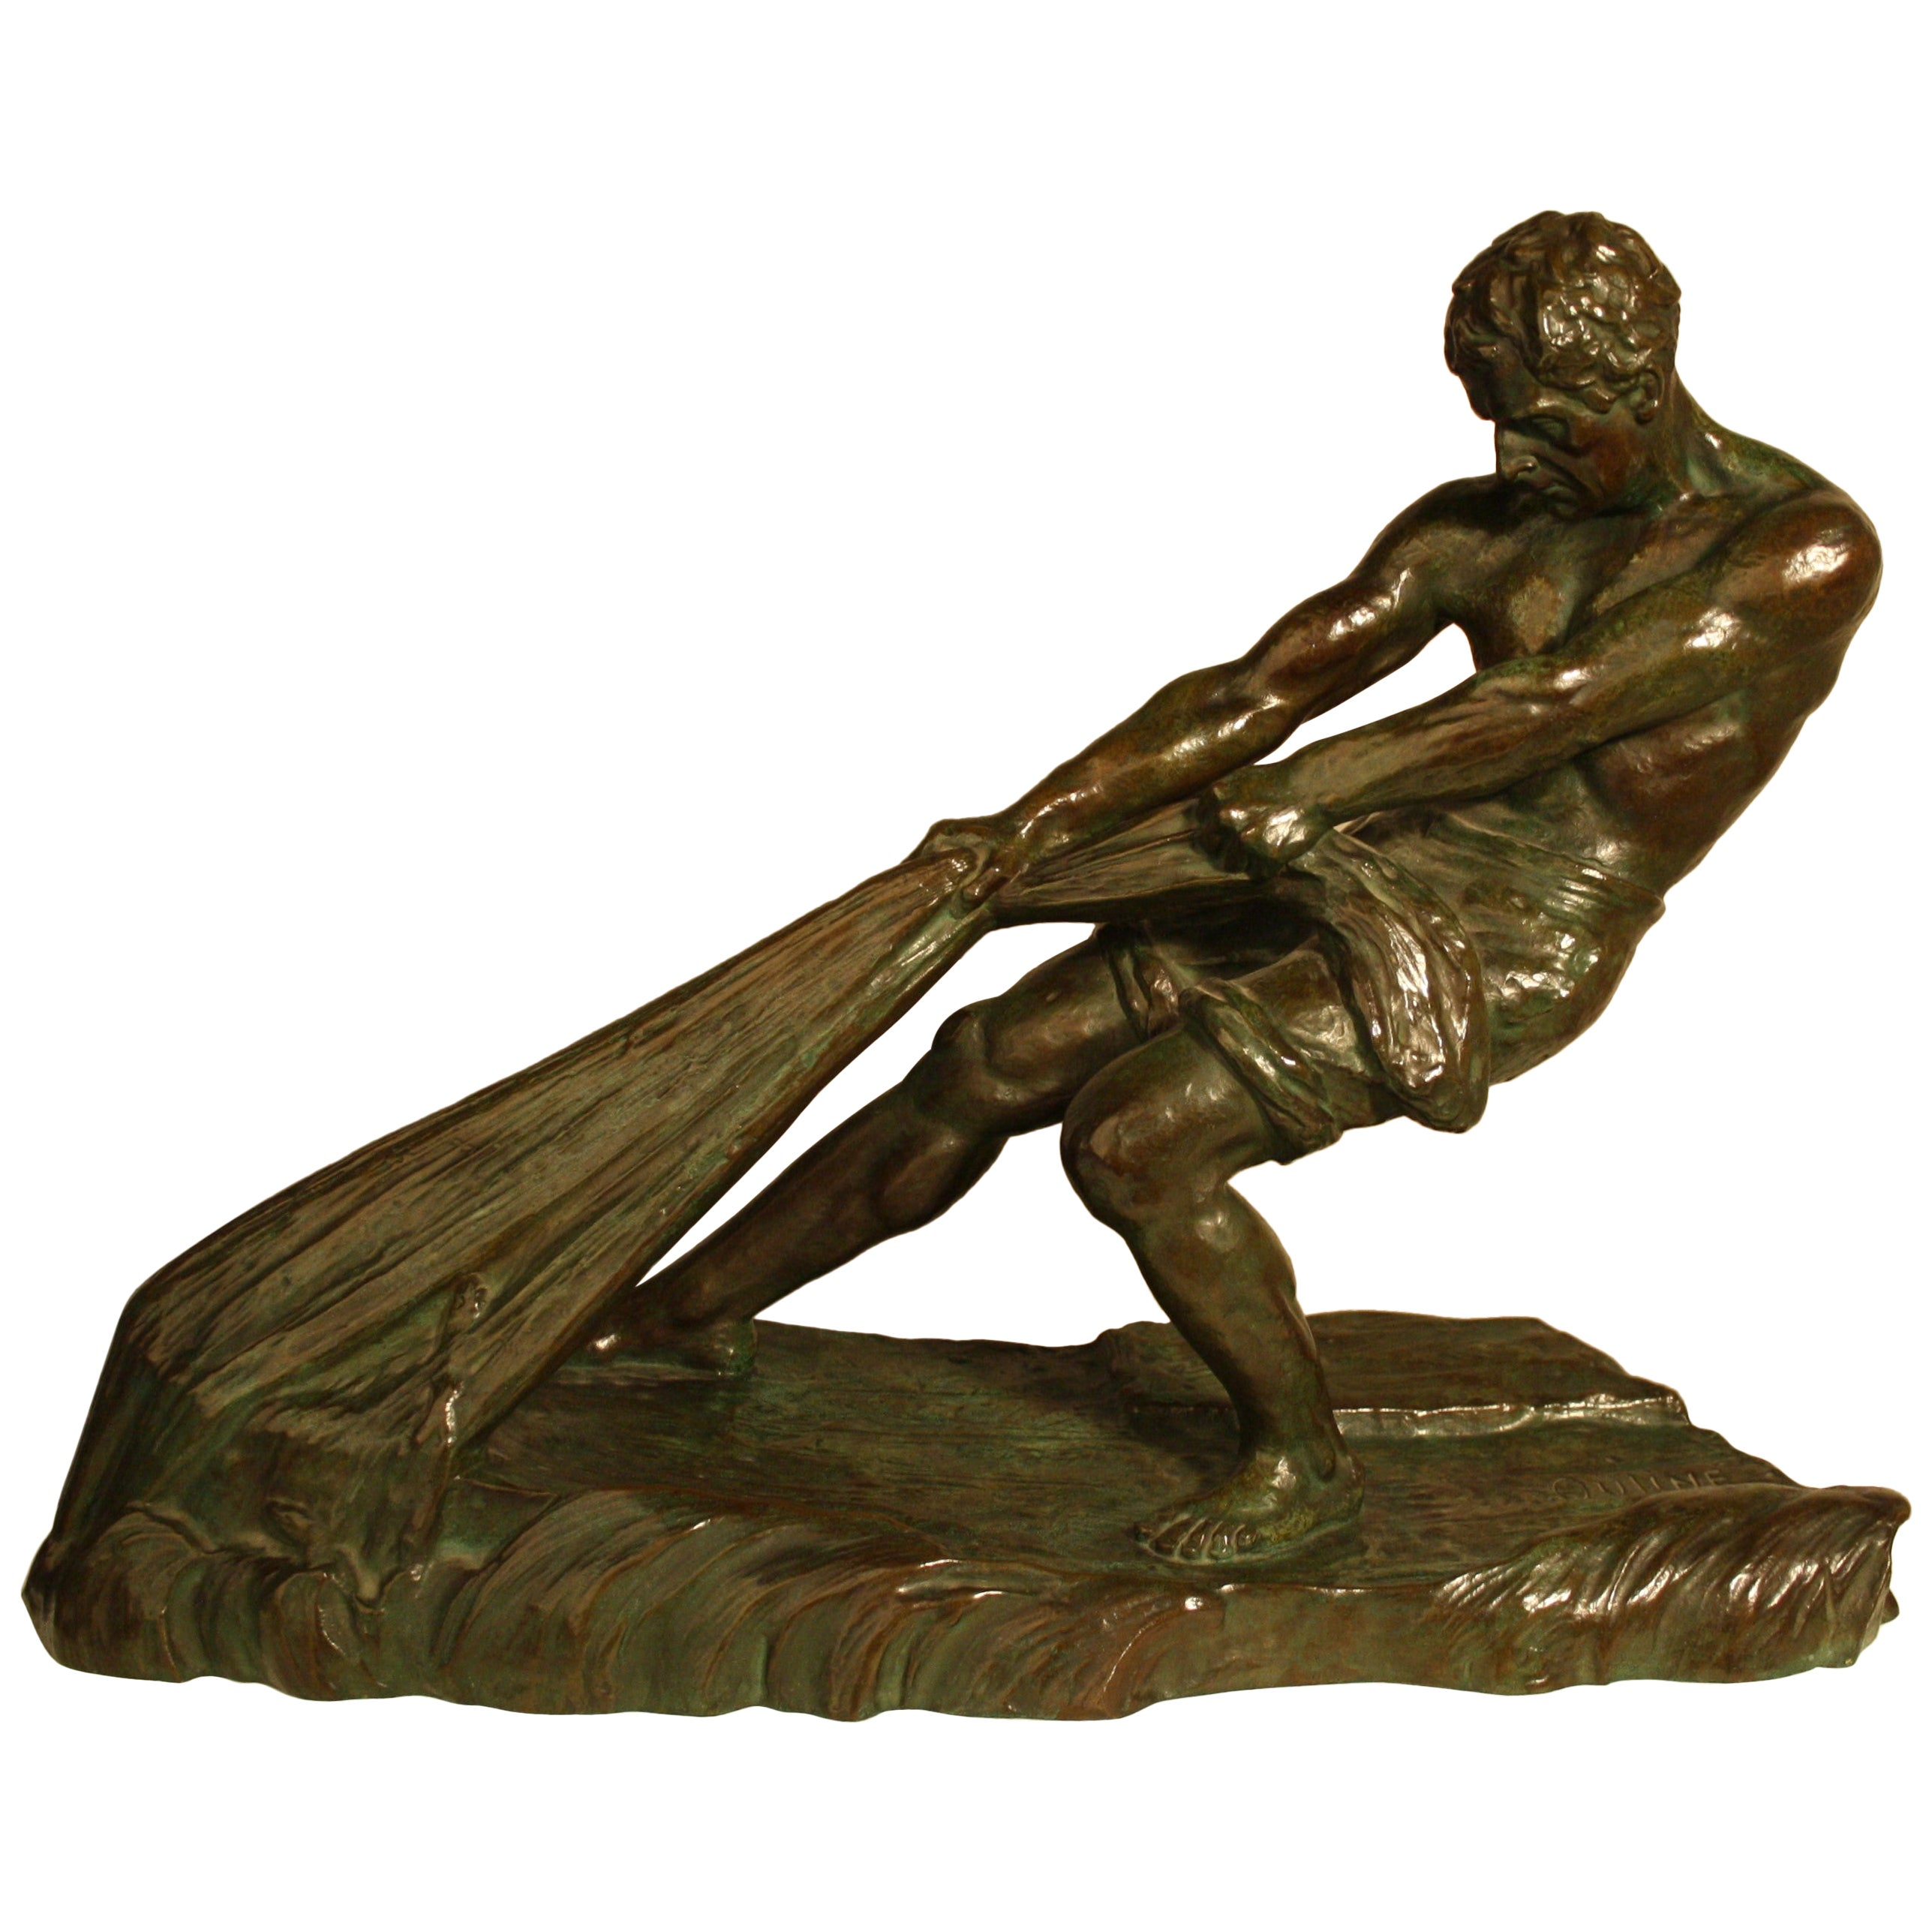 Art Deco Bronze Sculpture by Alexandre Ouline, France, 1930s